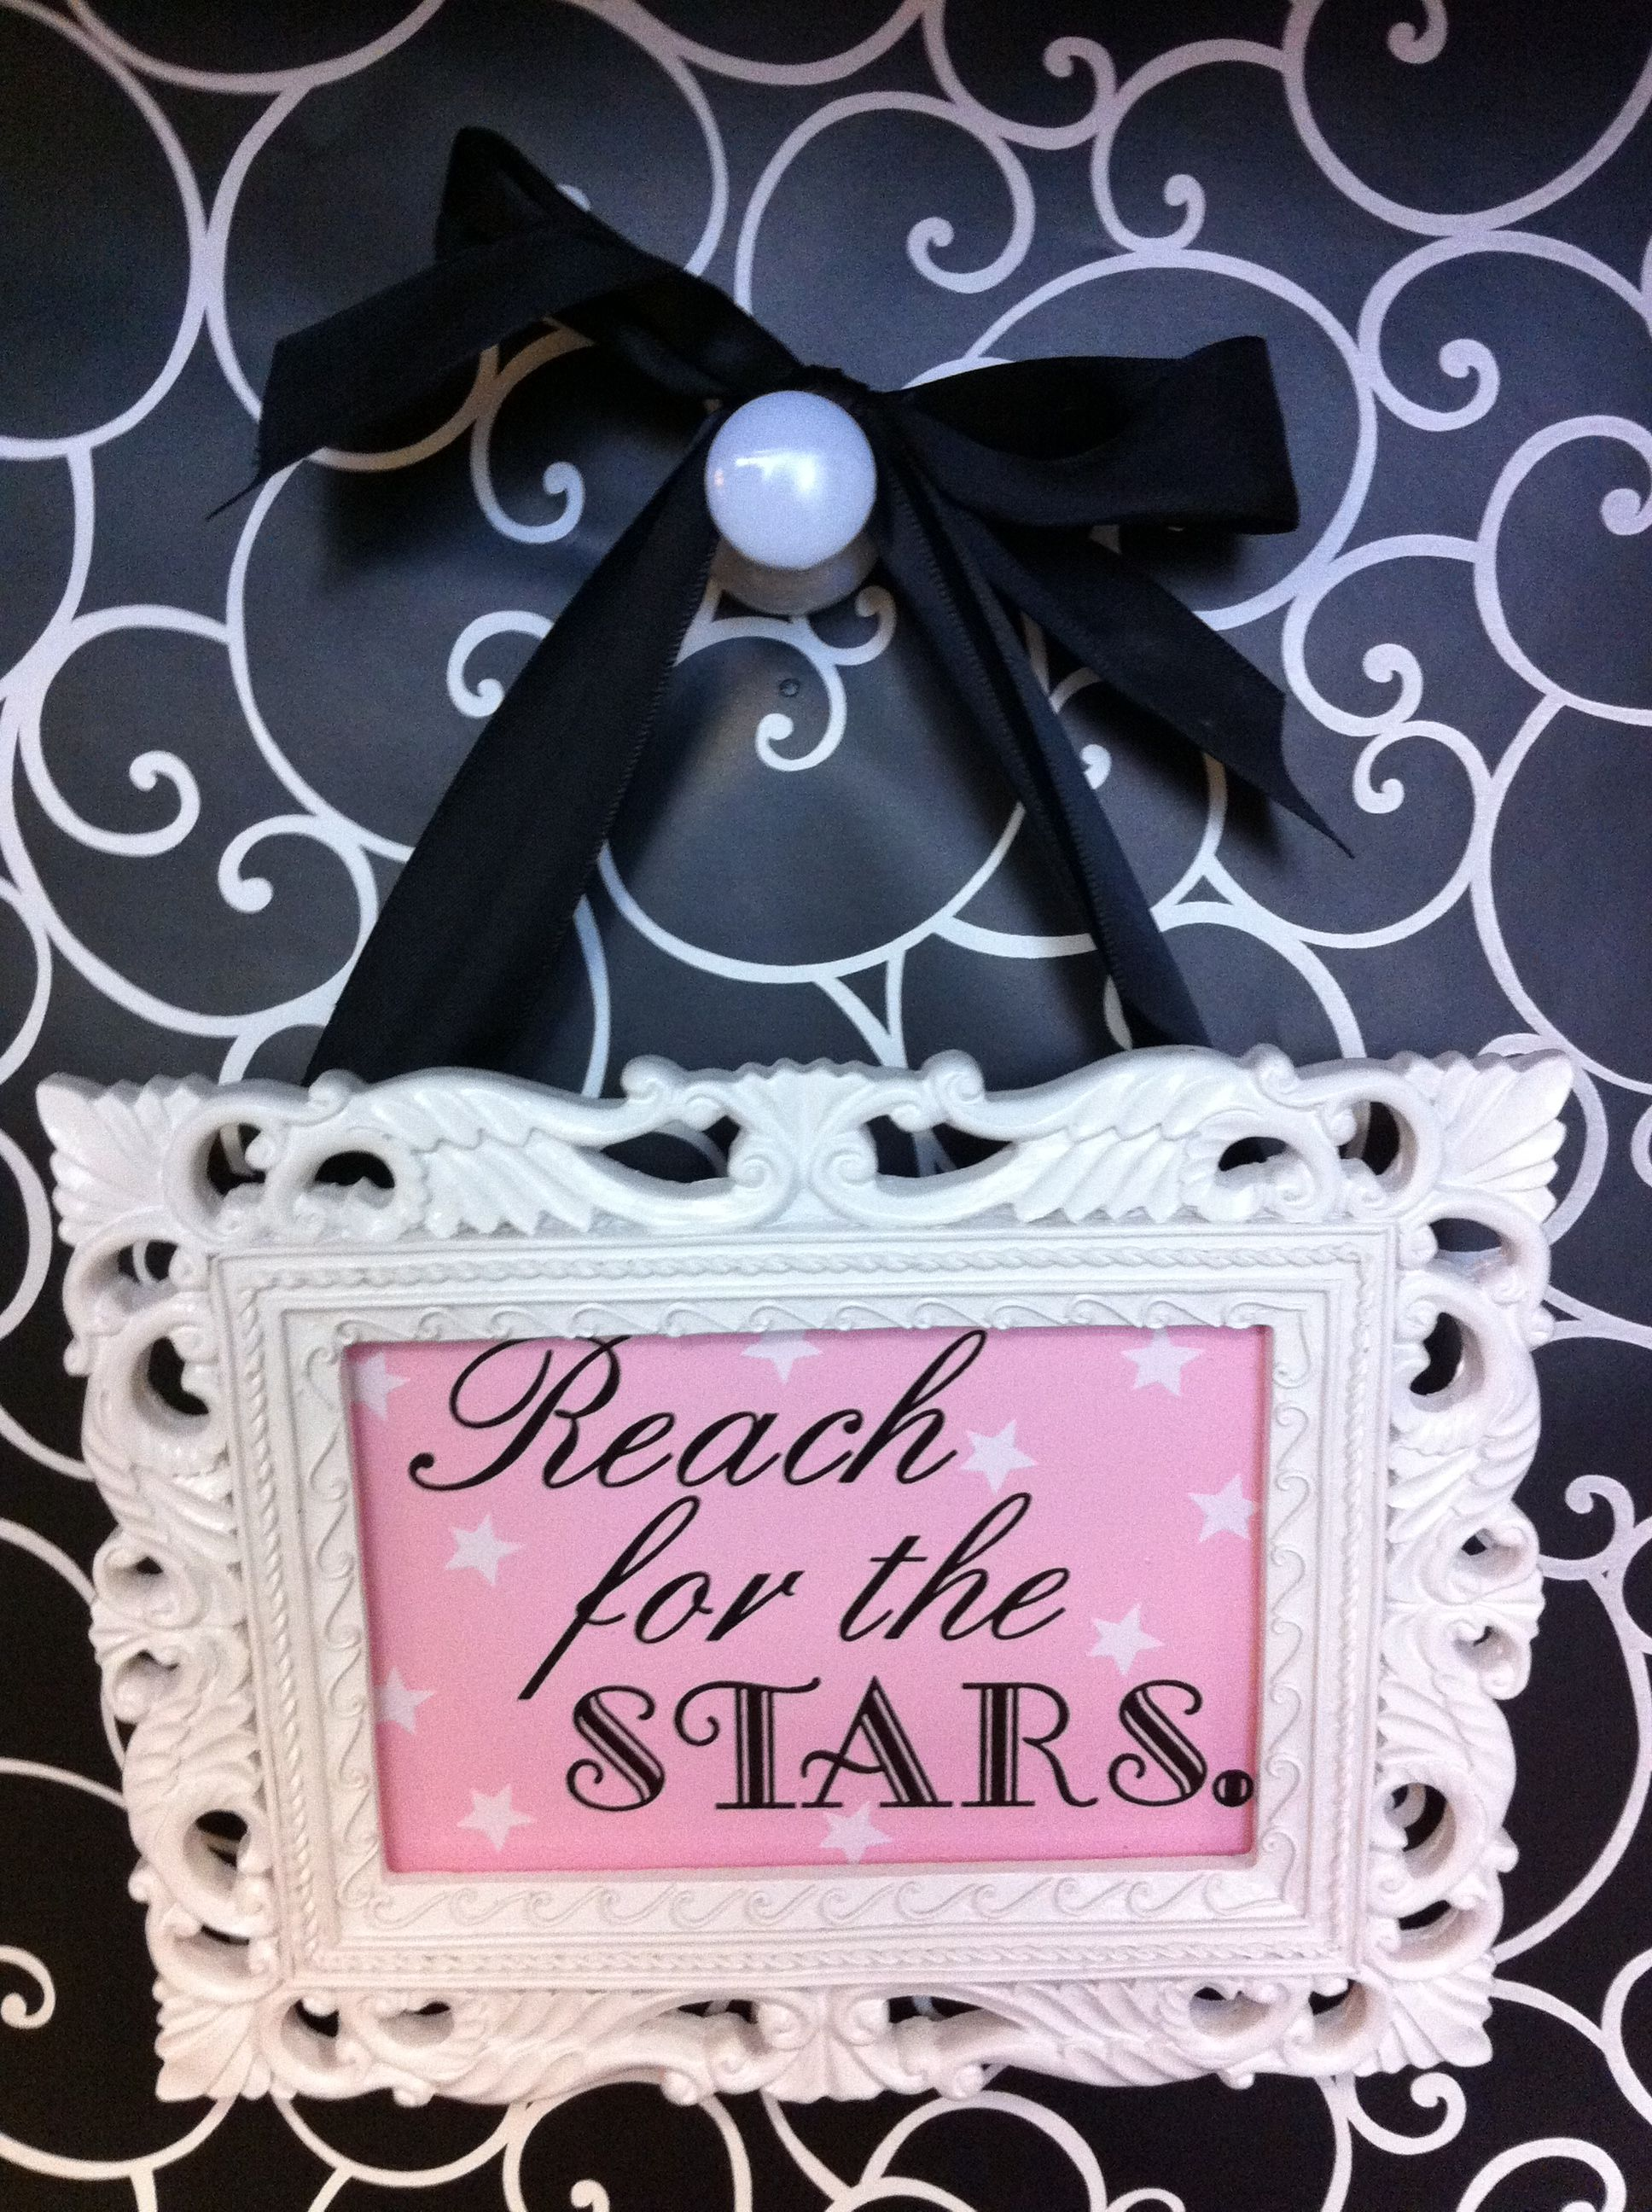 Reach for the stars cubicle wall decor creative for Cubicle wall decor